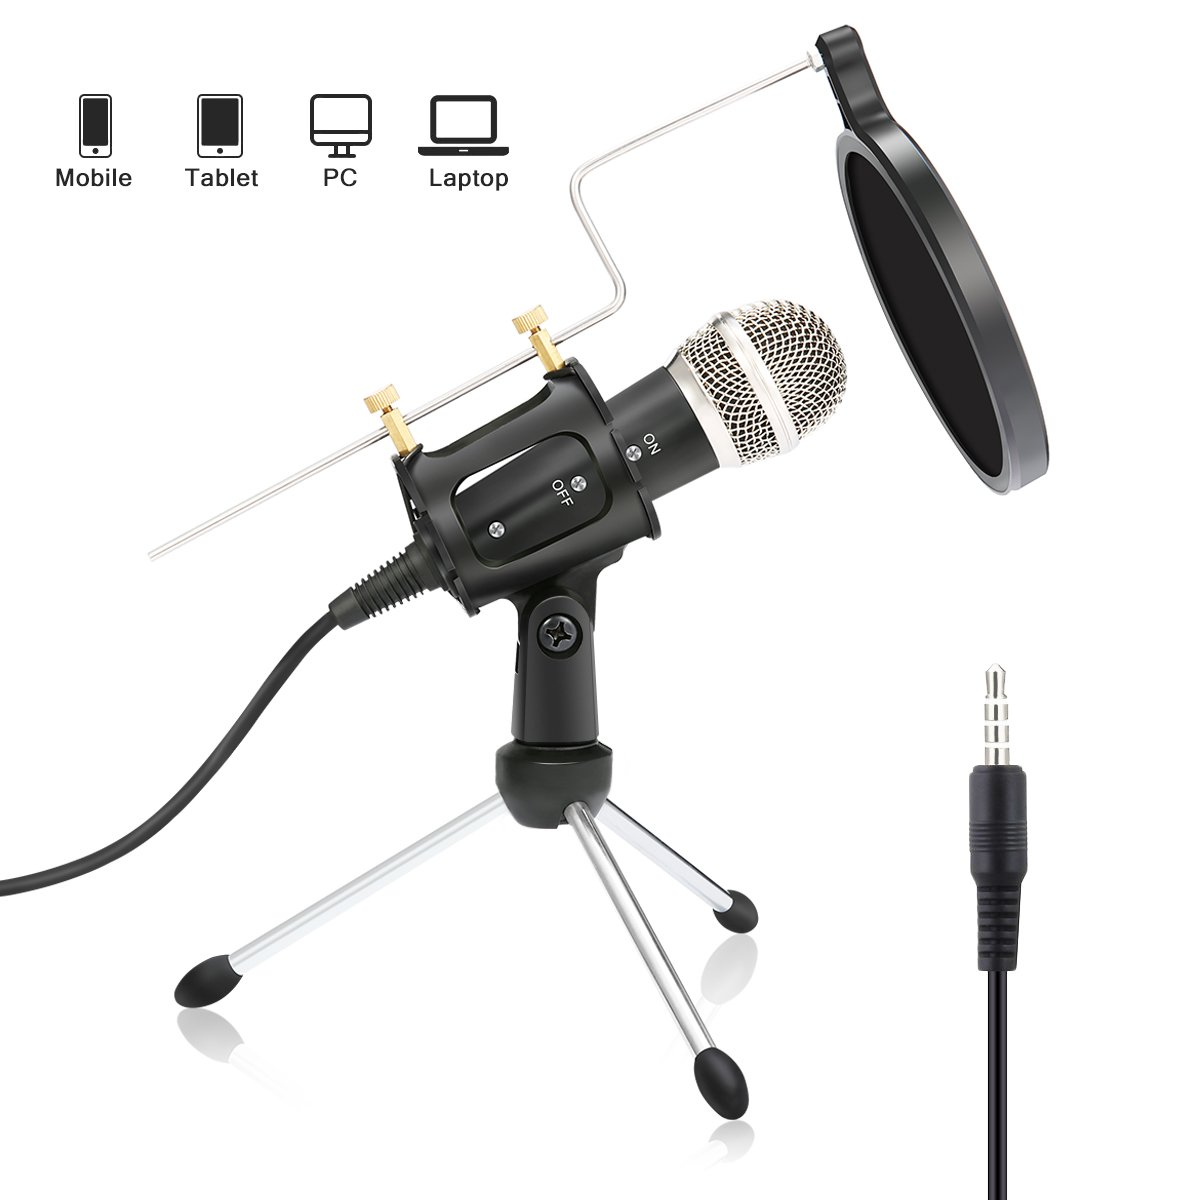 Condenser Microphone NASUM Portable Mini Recording Microphone with 3.5mm Plug &Play Home Studio Microphones for OnlineChat, Voice Recording,Tablets,Laptops,PC,YouTube,Google Voice Search by NASUM